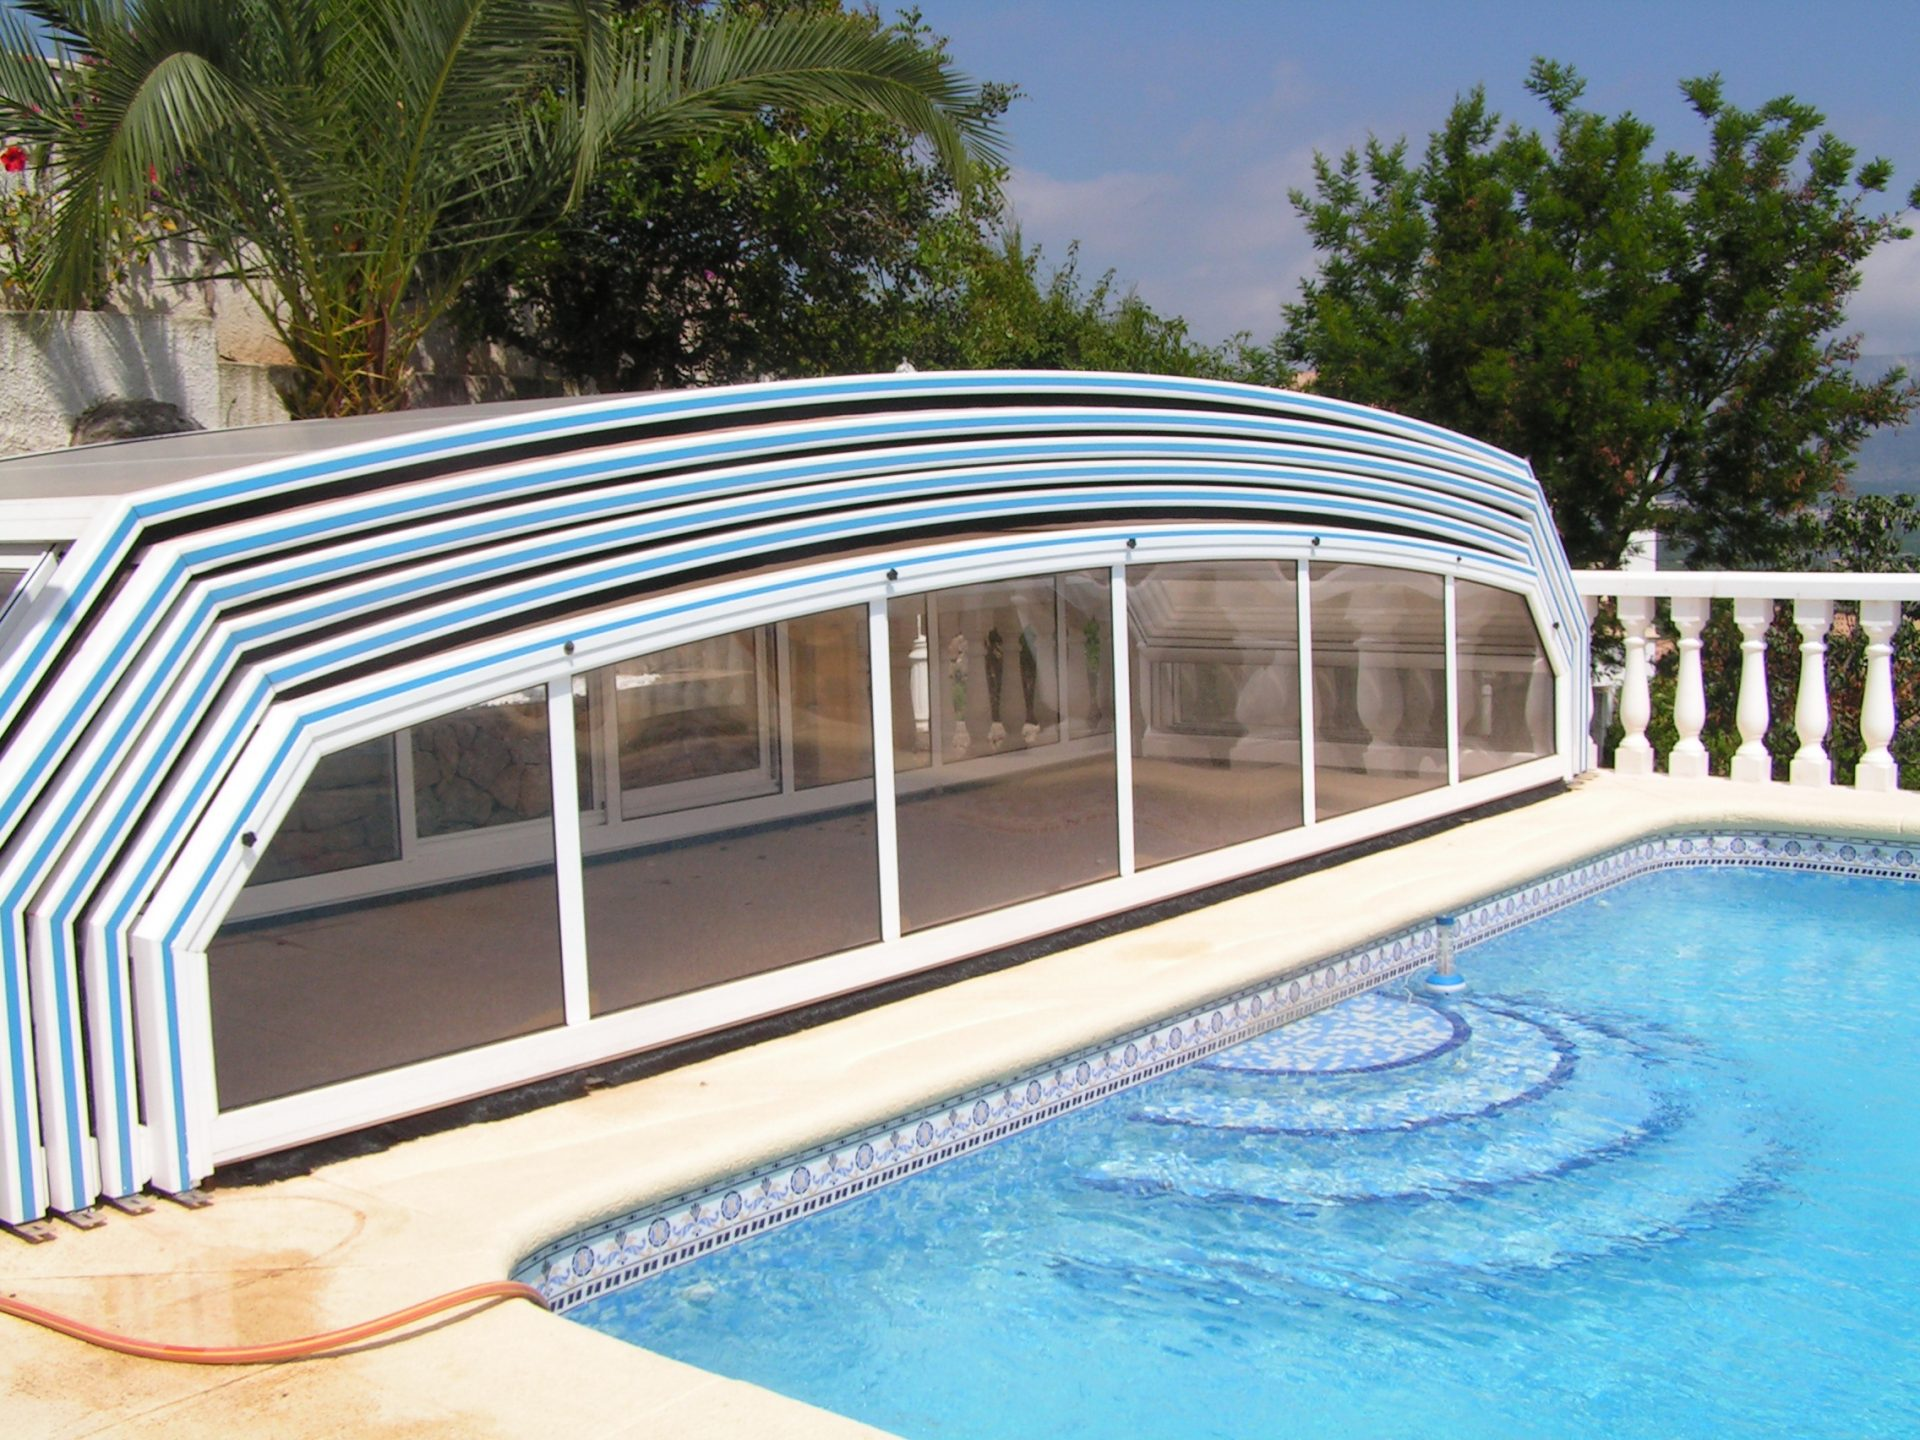 Abri piscine paris t lescopique sur roulette for Abri de piscine sokool